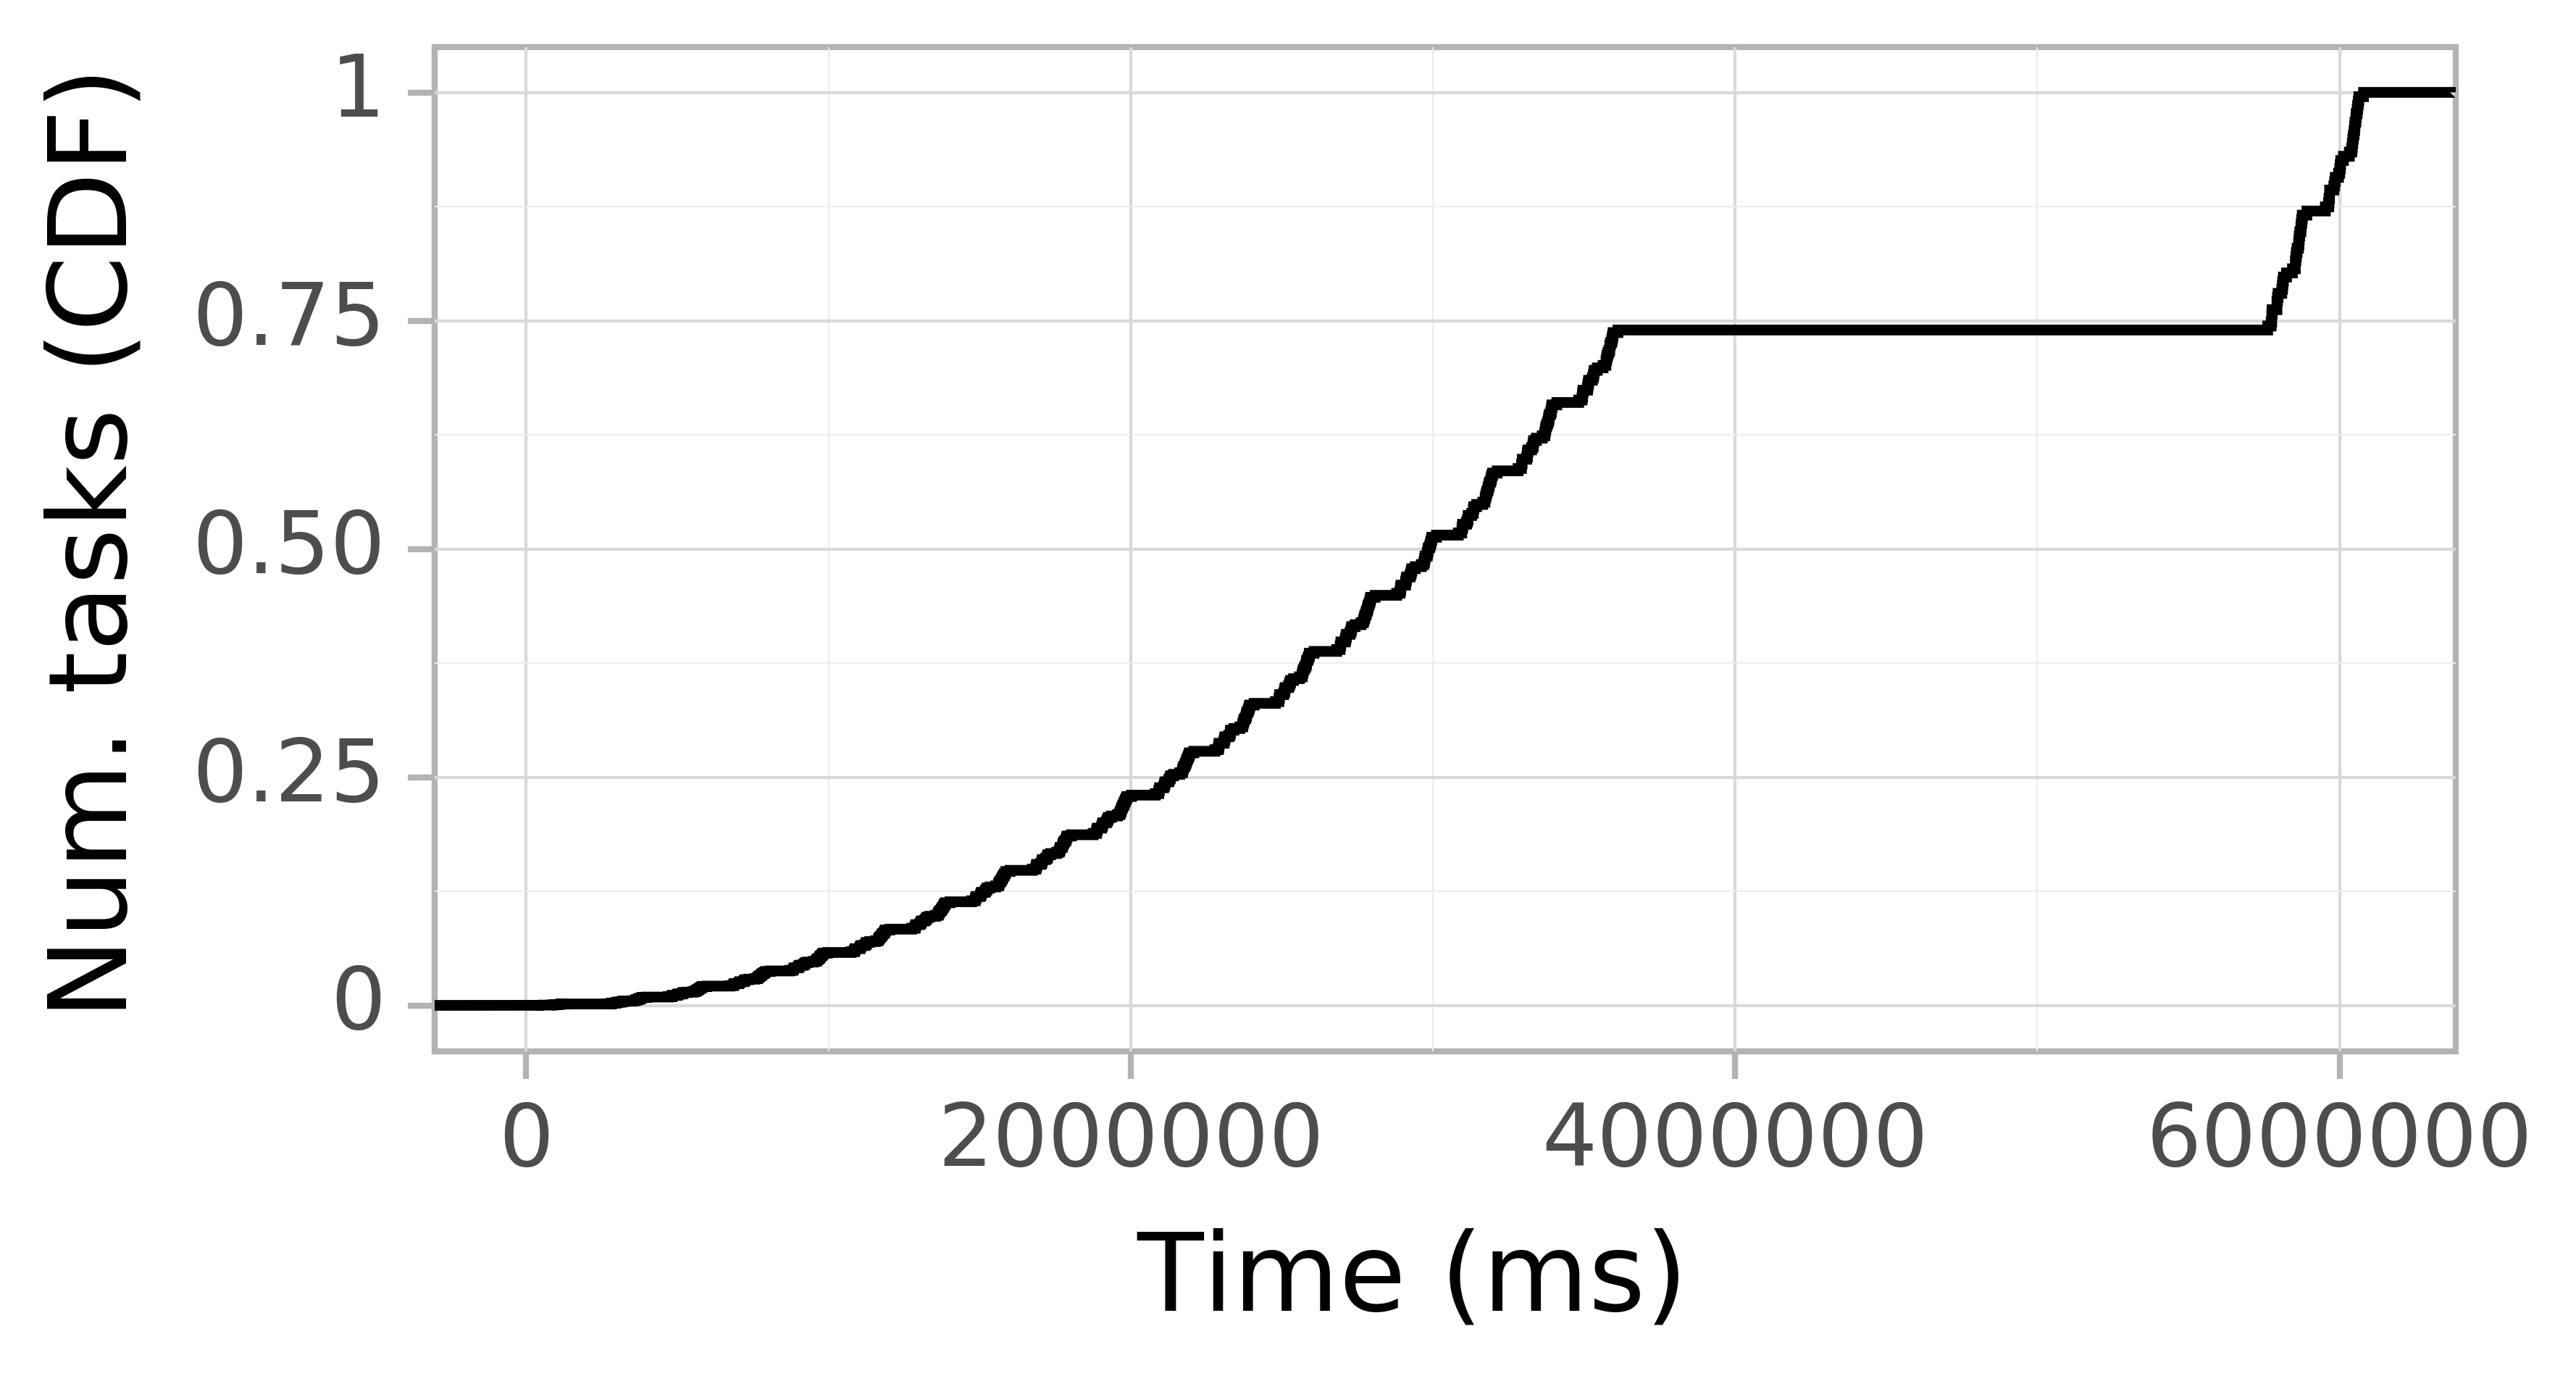 Task arrival CDF graph for the askalon-new_ee8 trace.